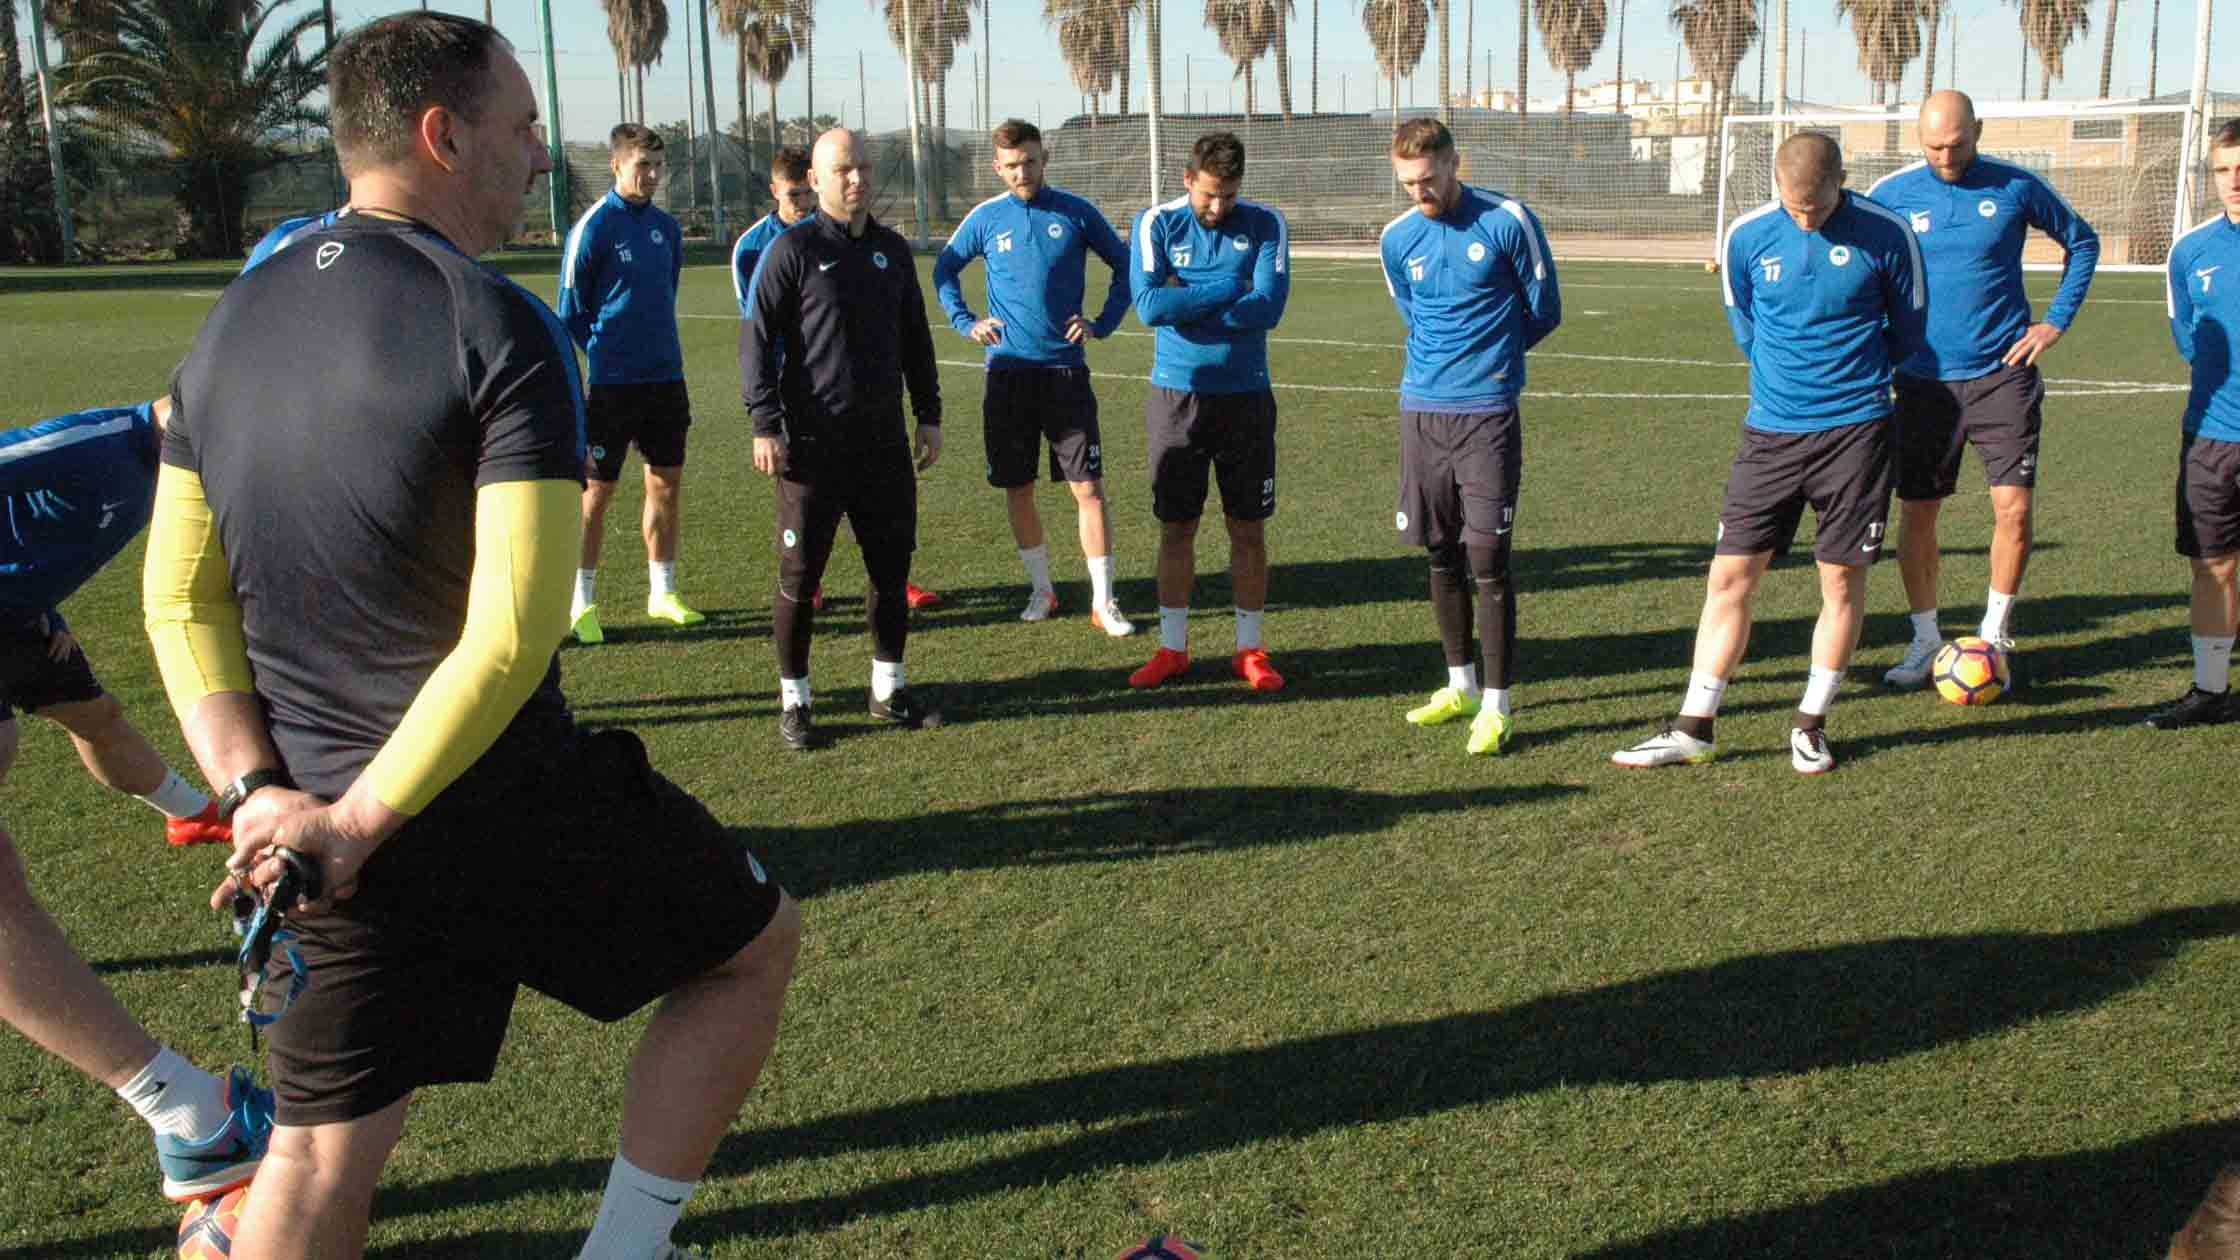 Das Trainingslager in Spanien